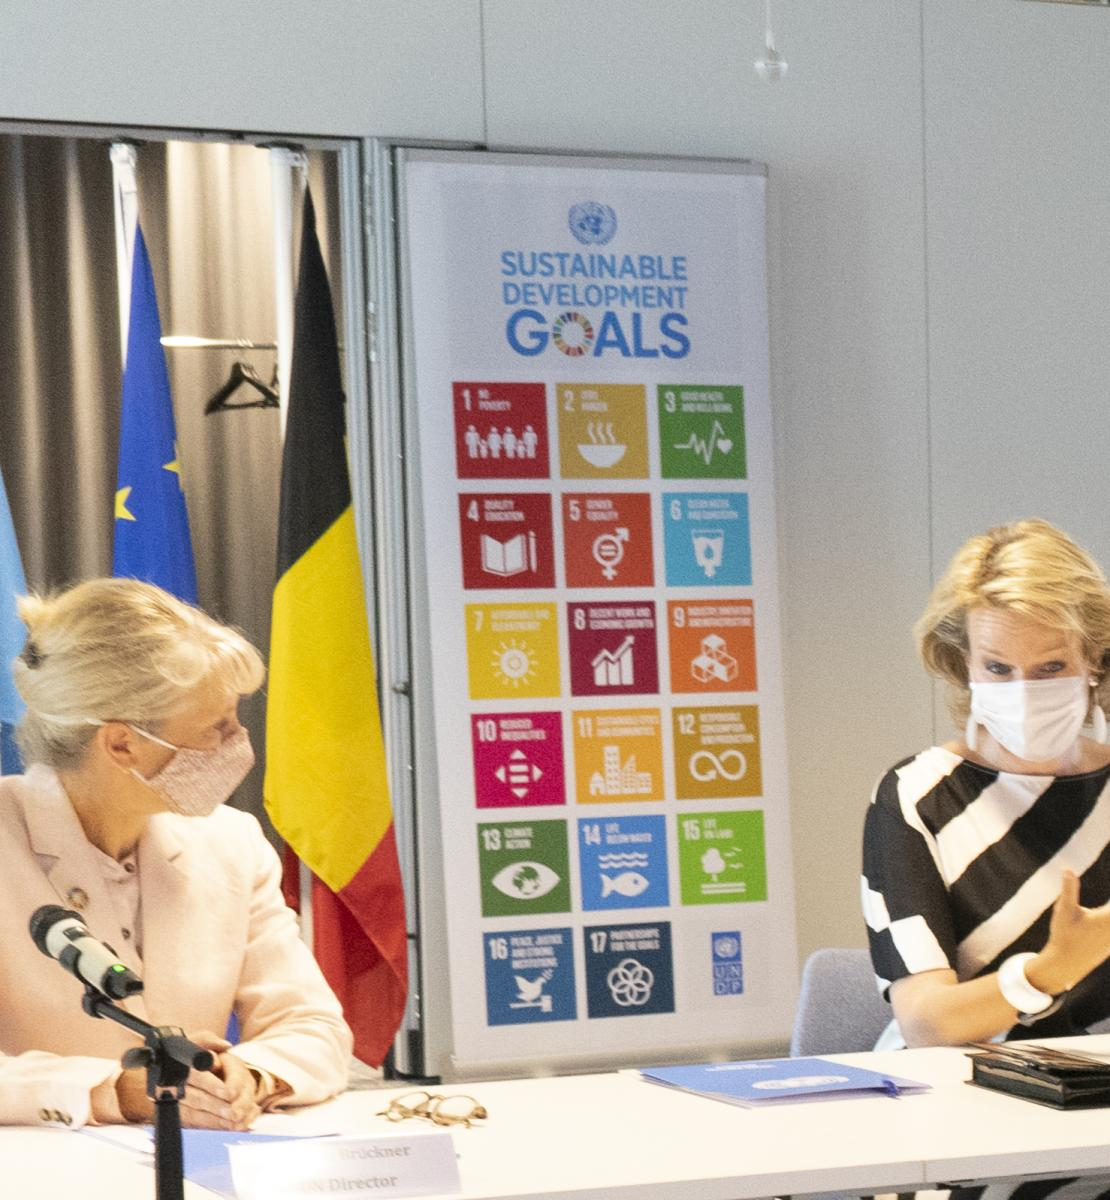 Director of the UN/UNDP Office in Brussels, and Her Majesty sit side-by-side at a desk in front of microphones.